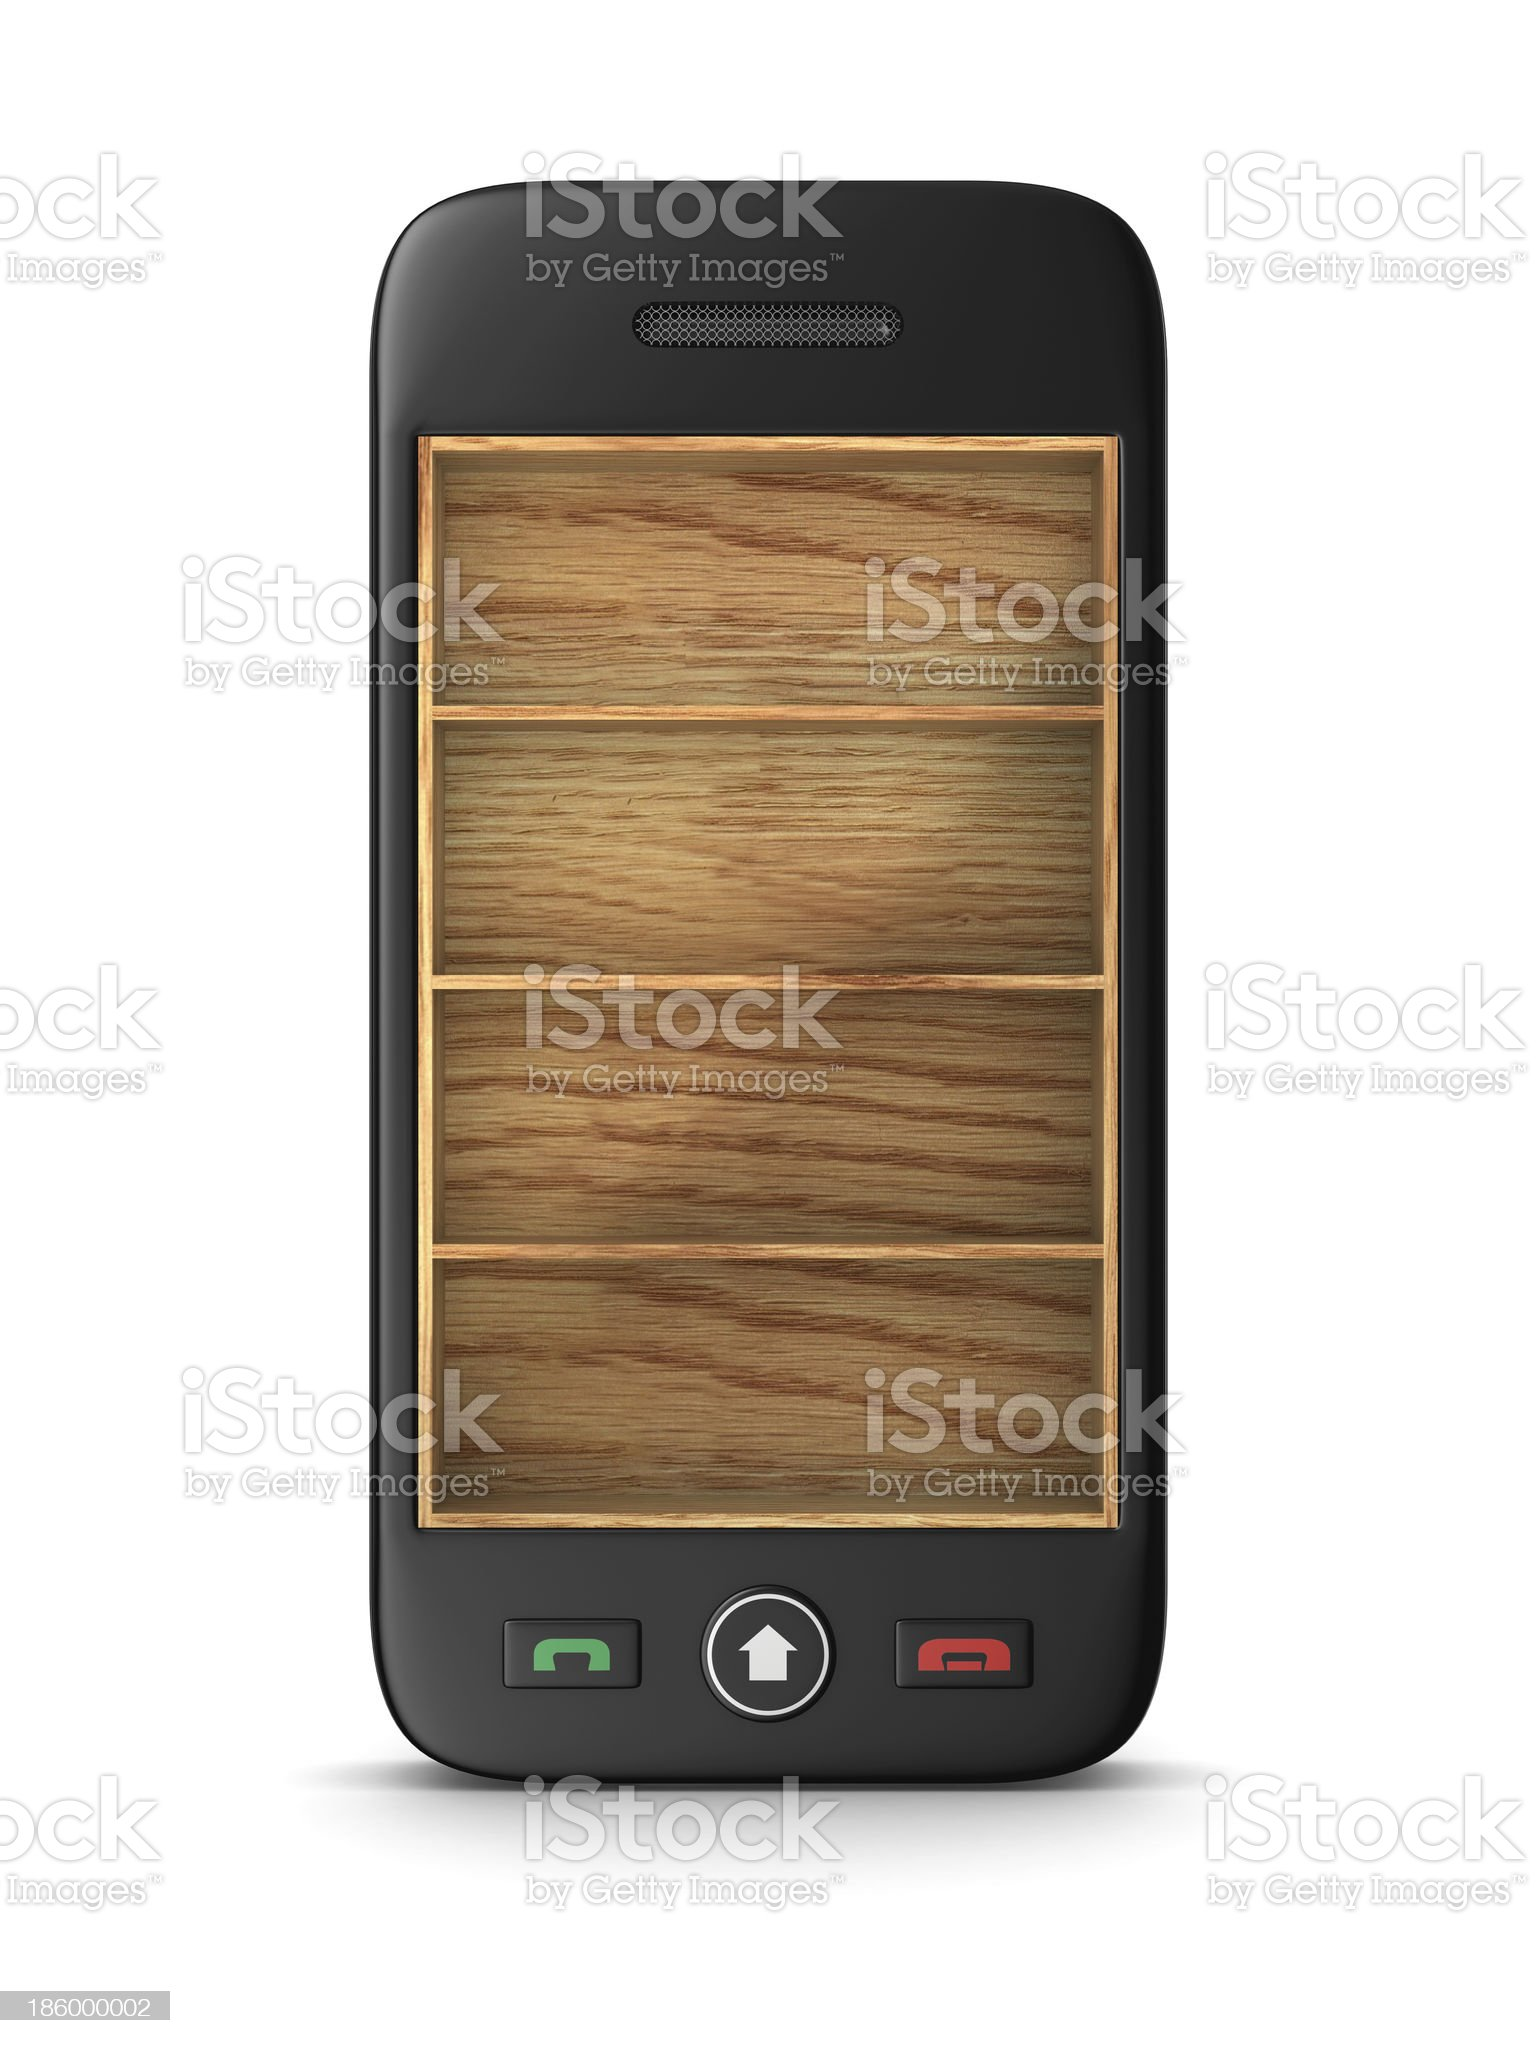 phone on white background. Isolated 3D image royalty-free stock photo